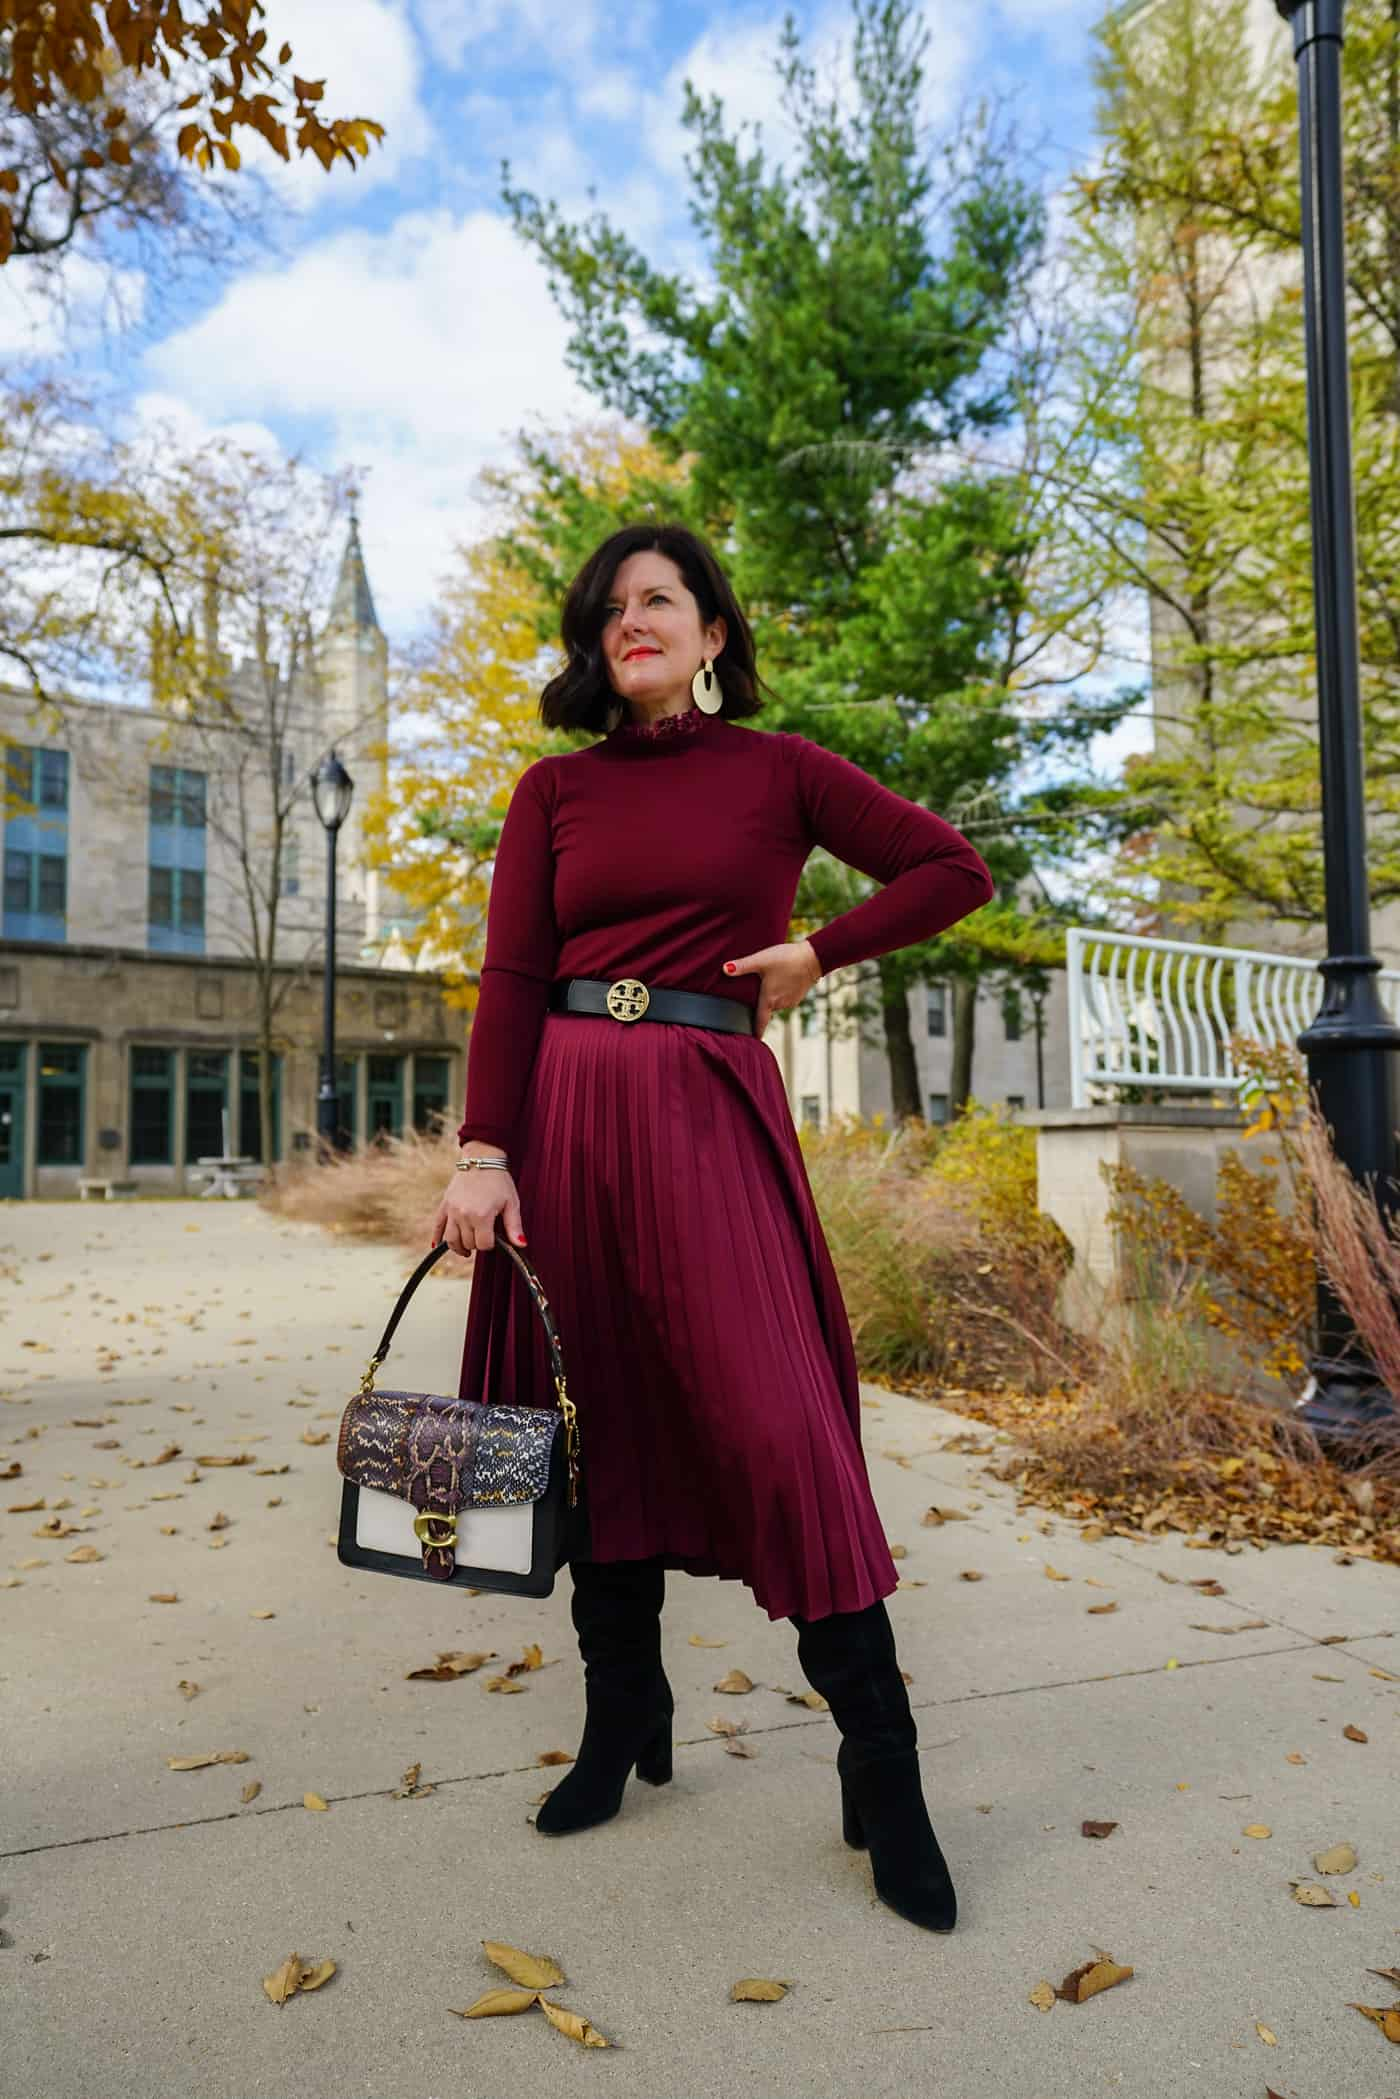 A Lily Love Affair wearing a maroon pleated skirt with matching maroon sweater and black knee high boots